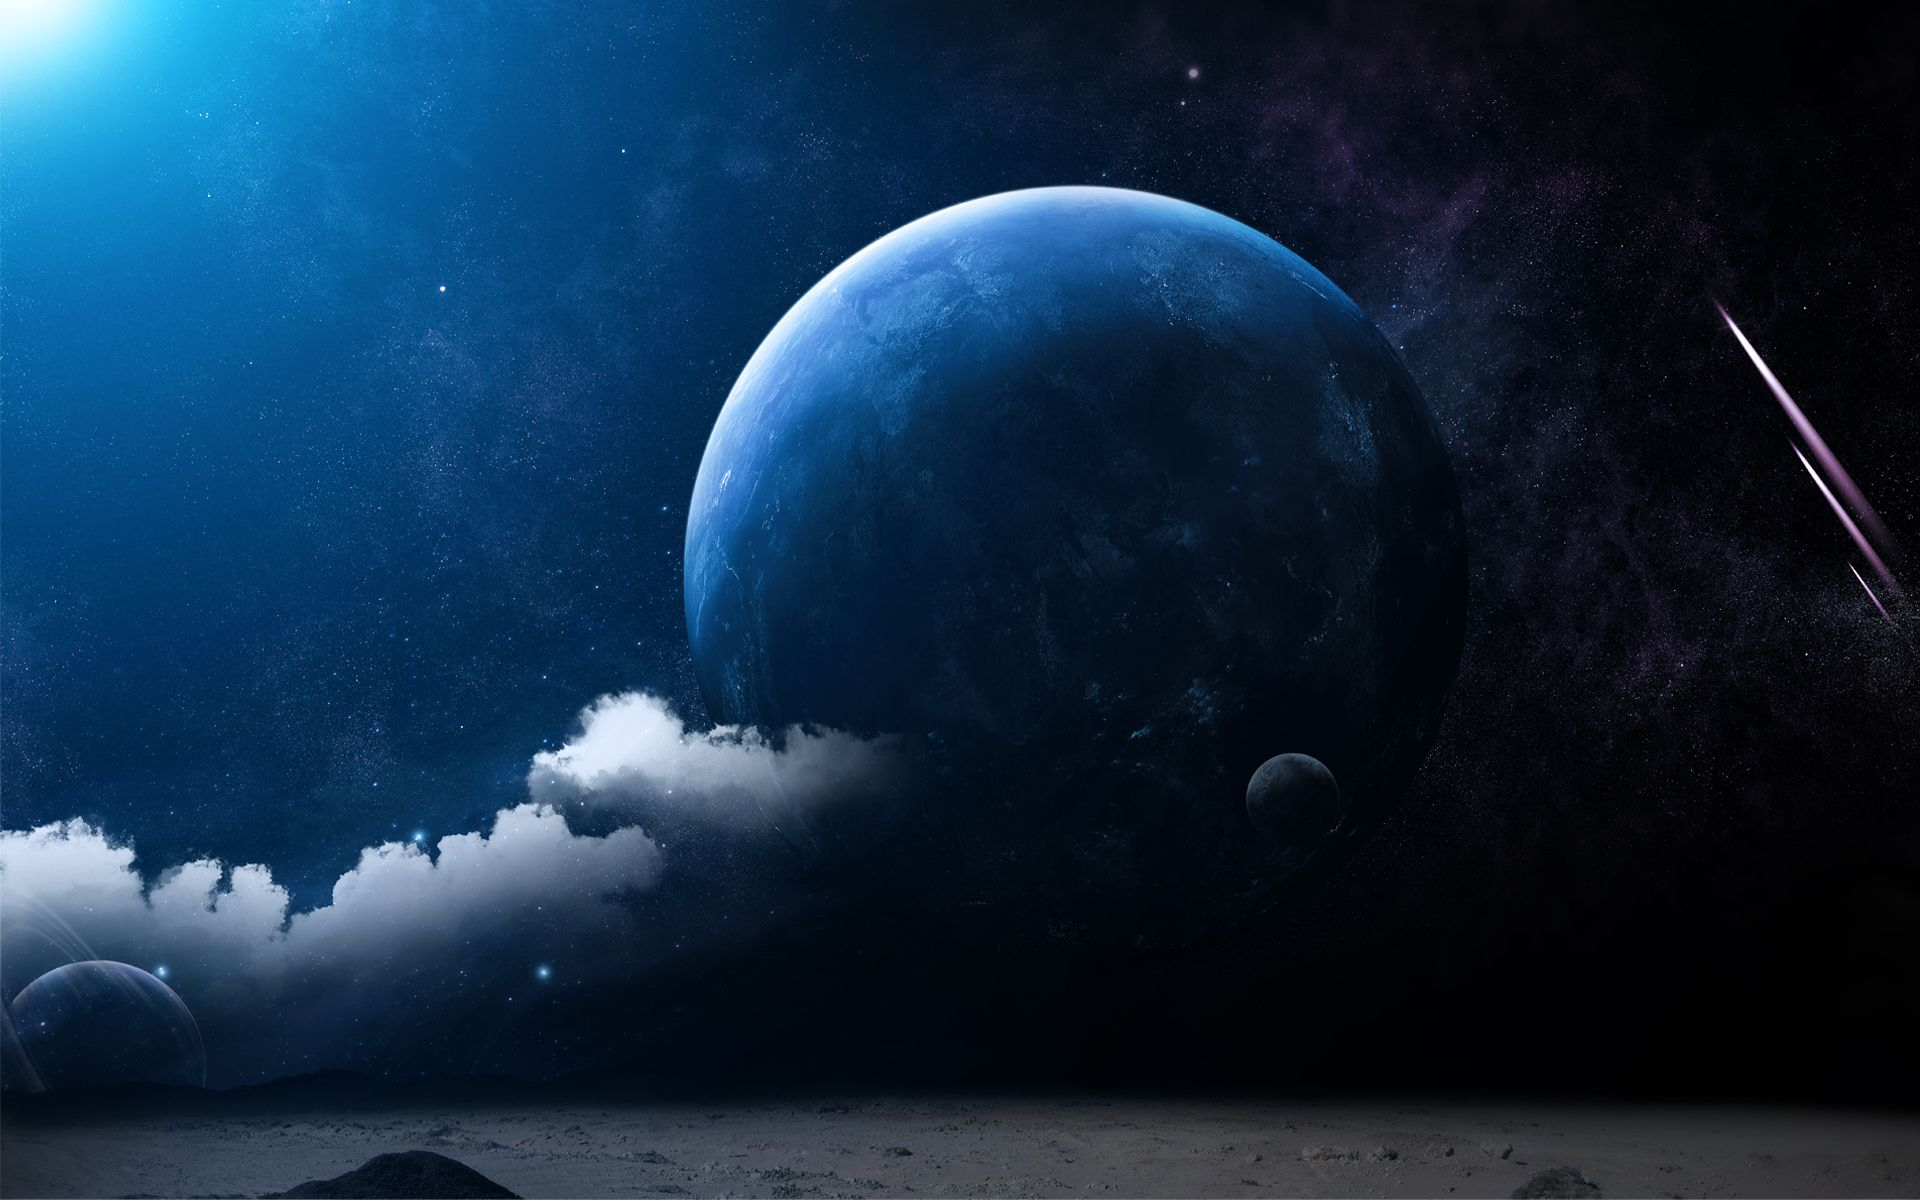 Space Planets And Universe Scifi Fantasy Art Science Fiction Illustration Hd Wallpaper